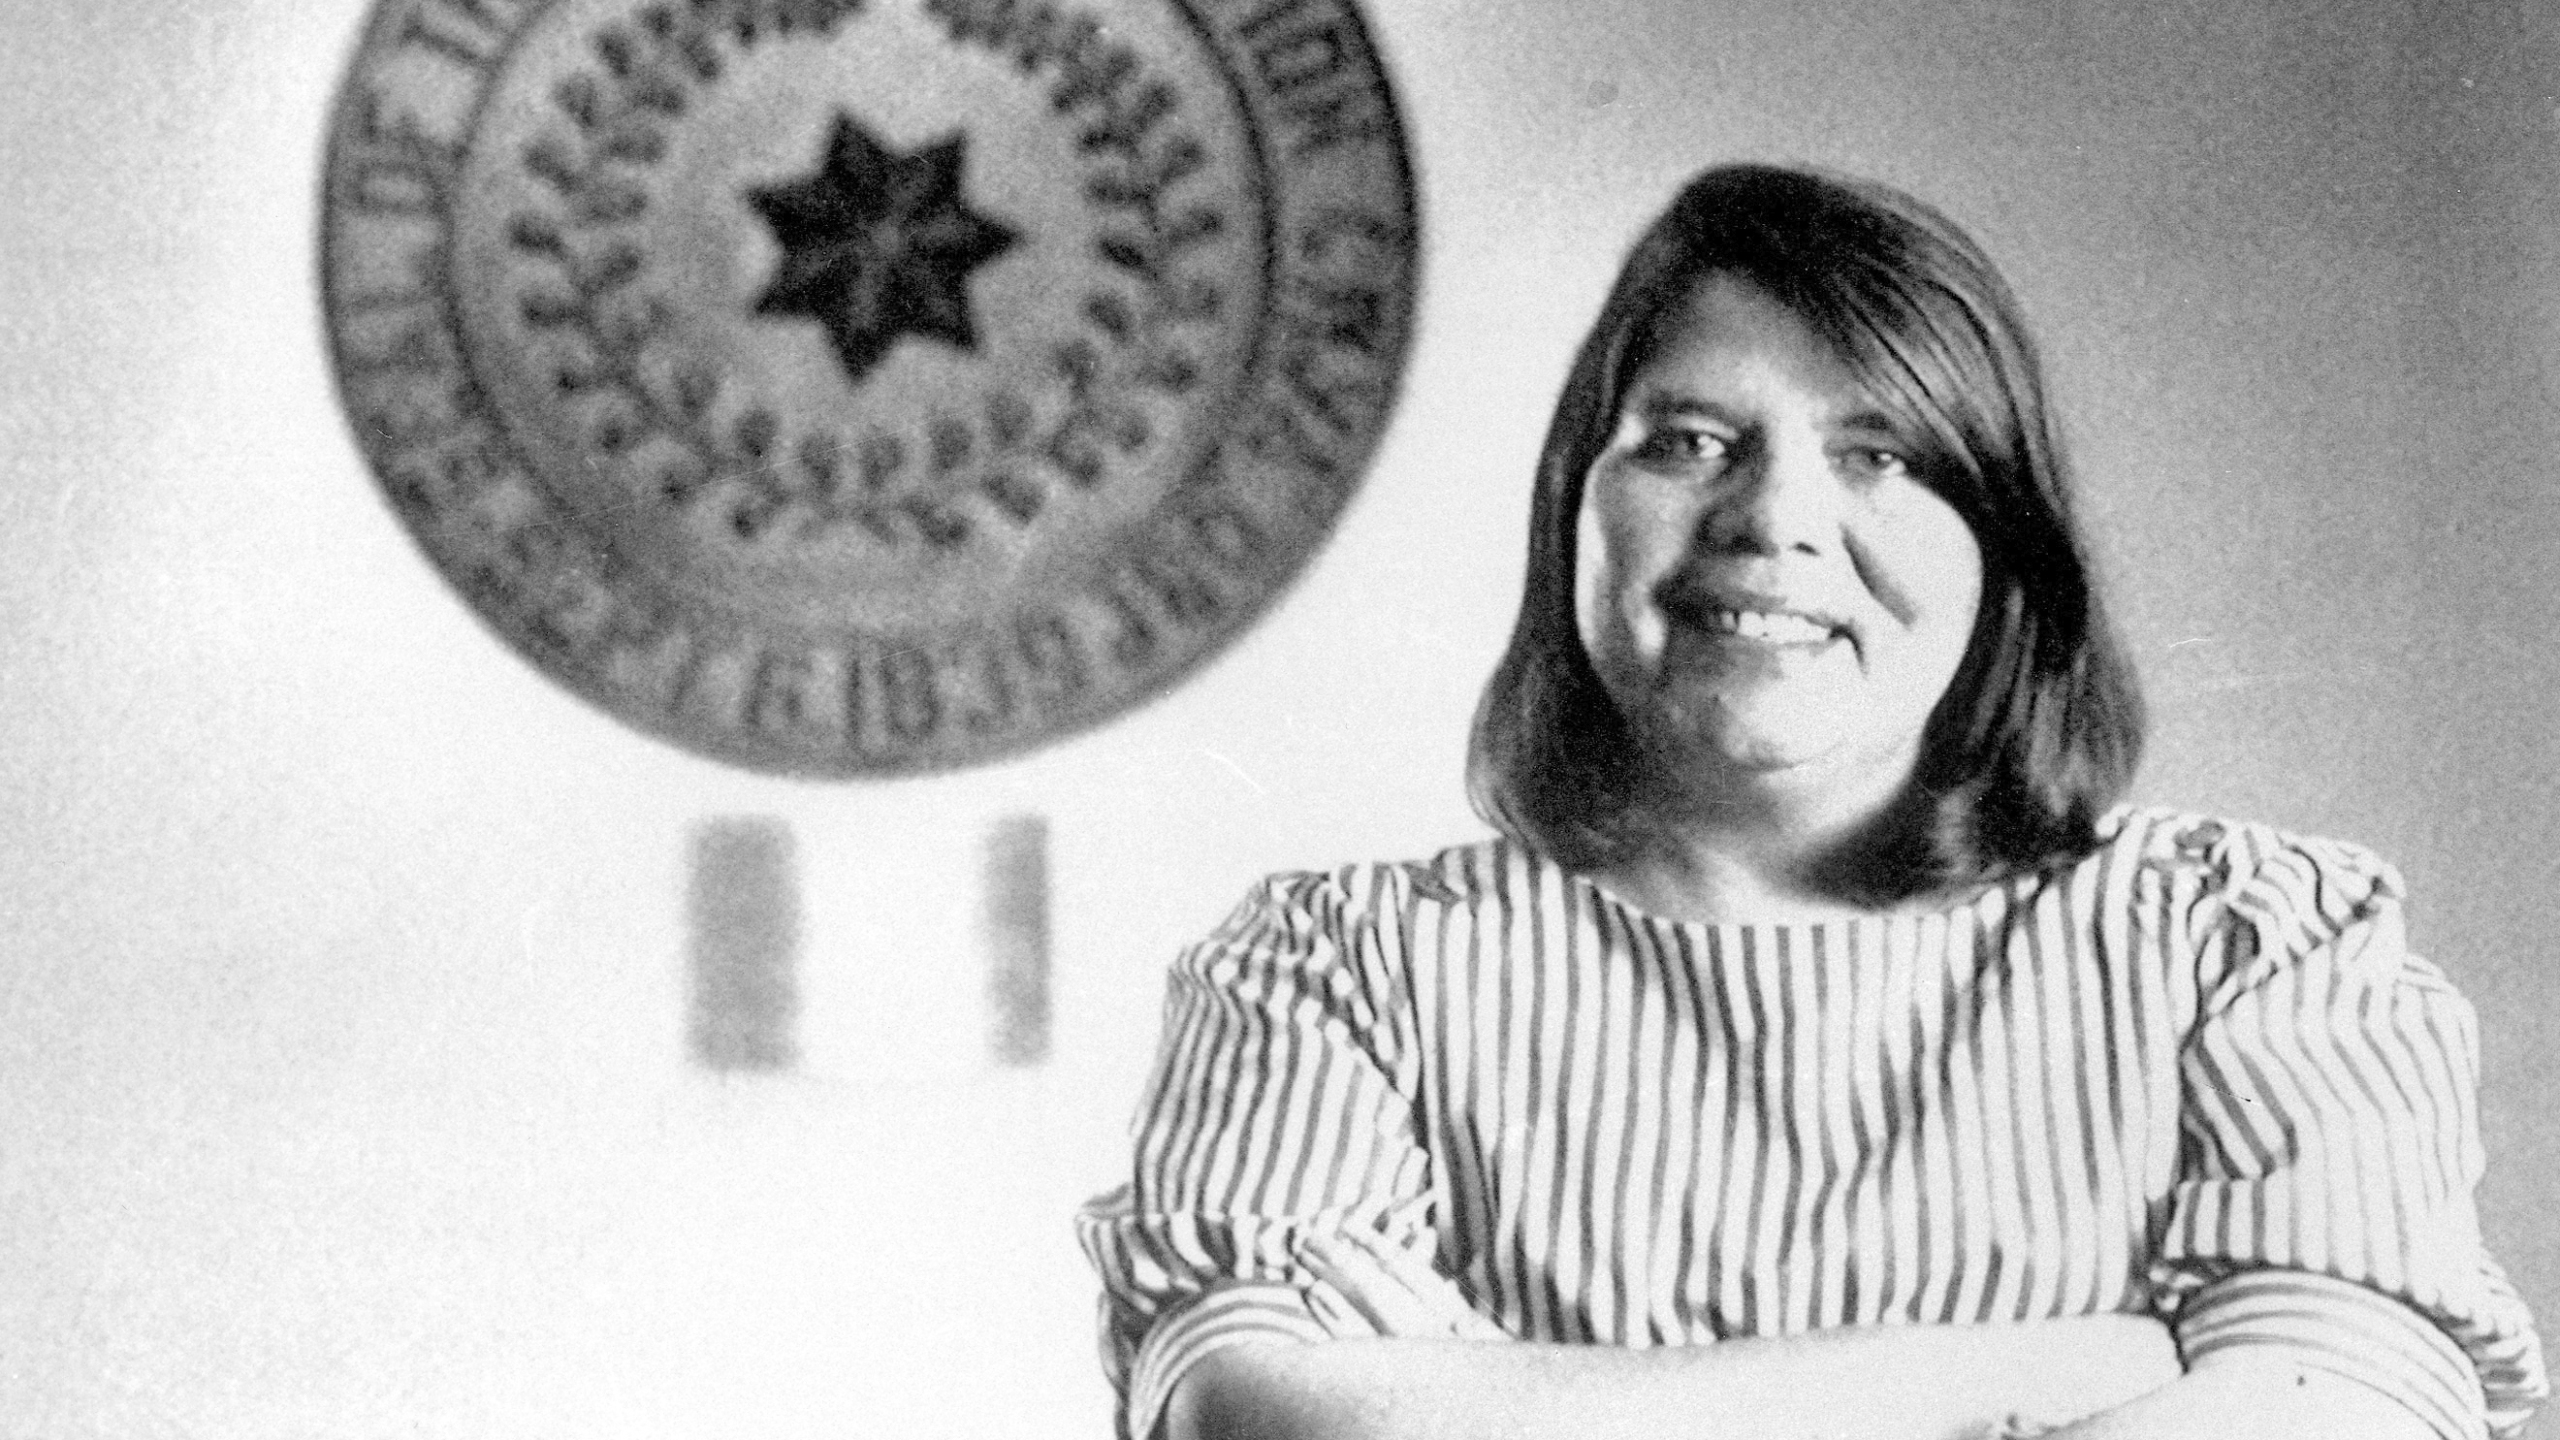 In this July 19, 1985, file photo, Wilma Mankiller, the first woman elected chief of the Cherokee Nation, poses in front of the tribal emblem at the Cherokee Nation in Oklahoma. The U.S. Mint says Mankiller will be among the first five women honored in the new American Women Quarters Program, which starts in 2022 and continues until 2025. (AP Photo, File)